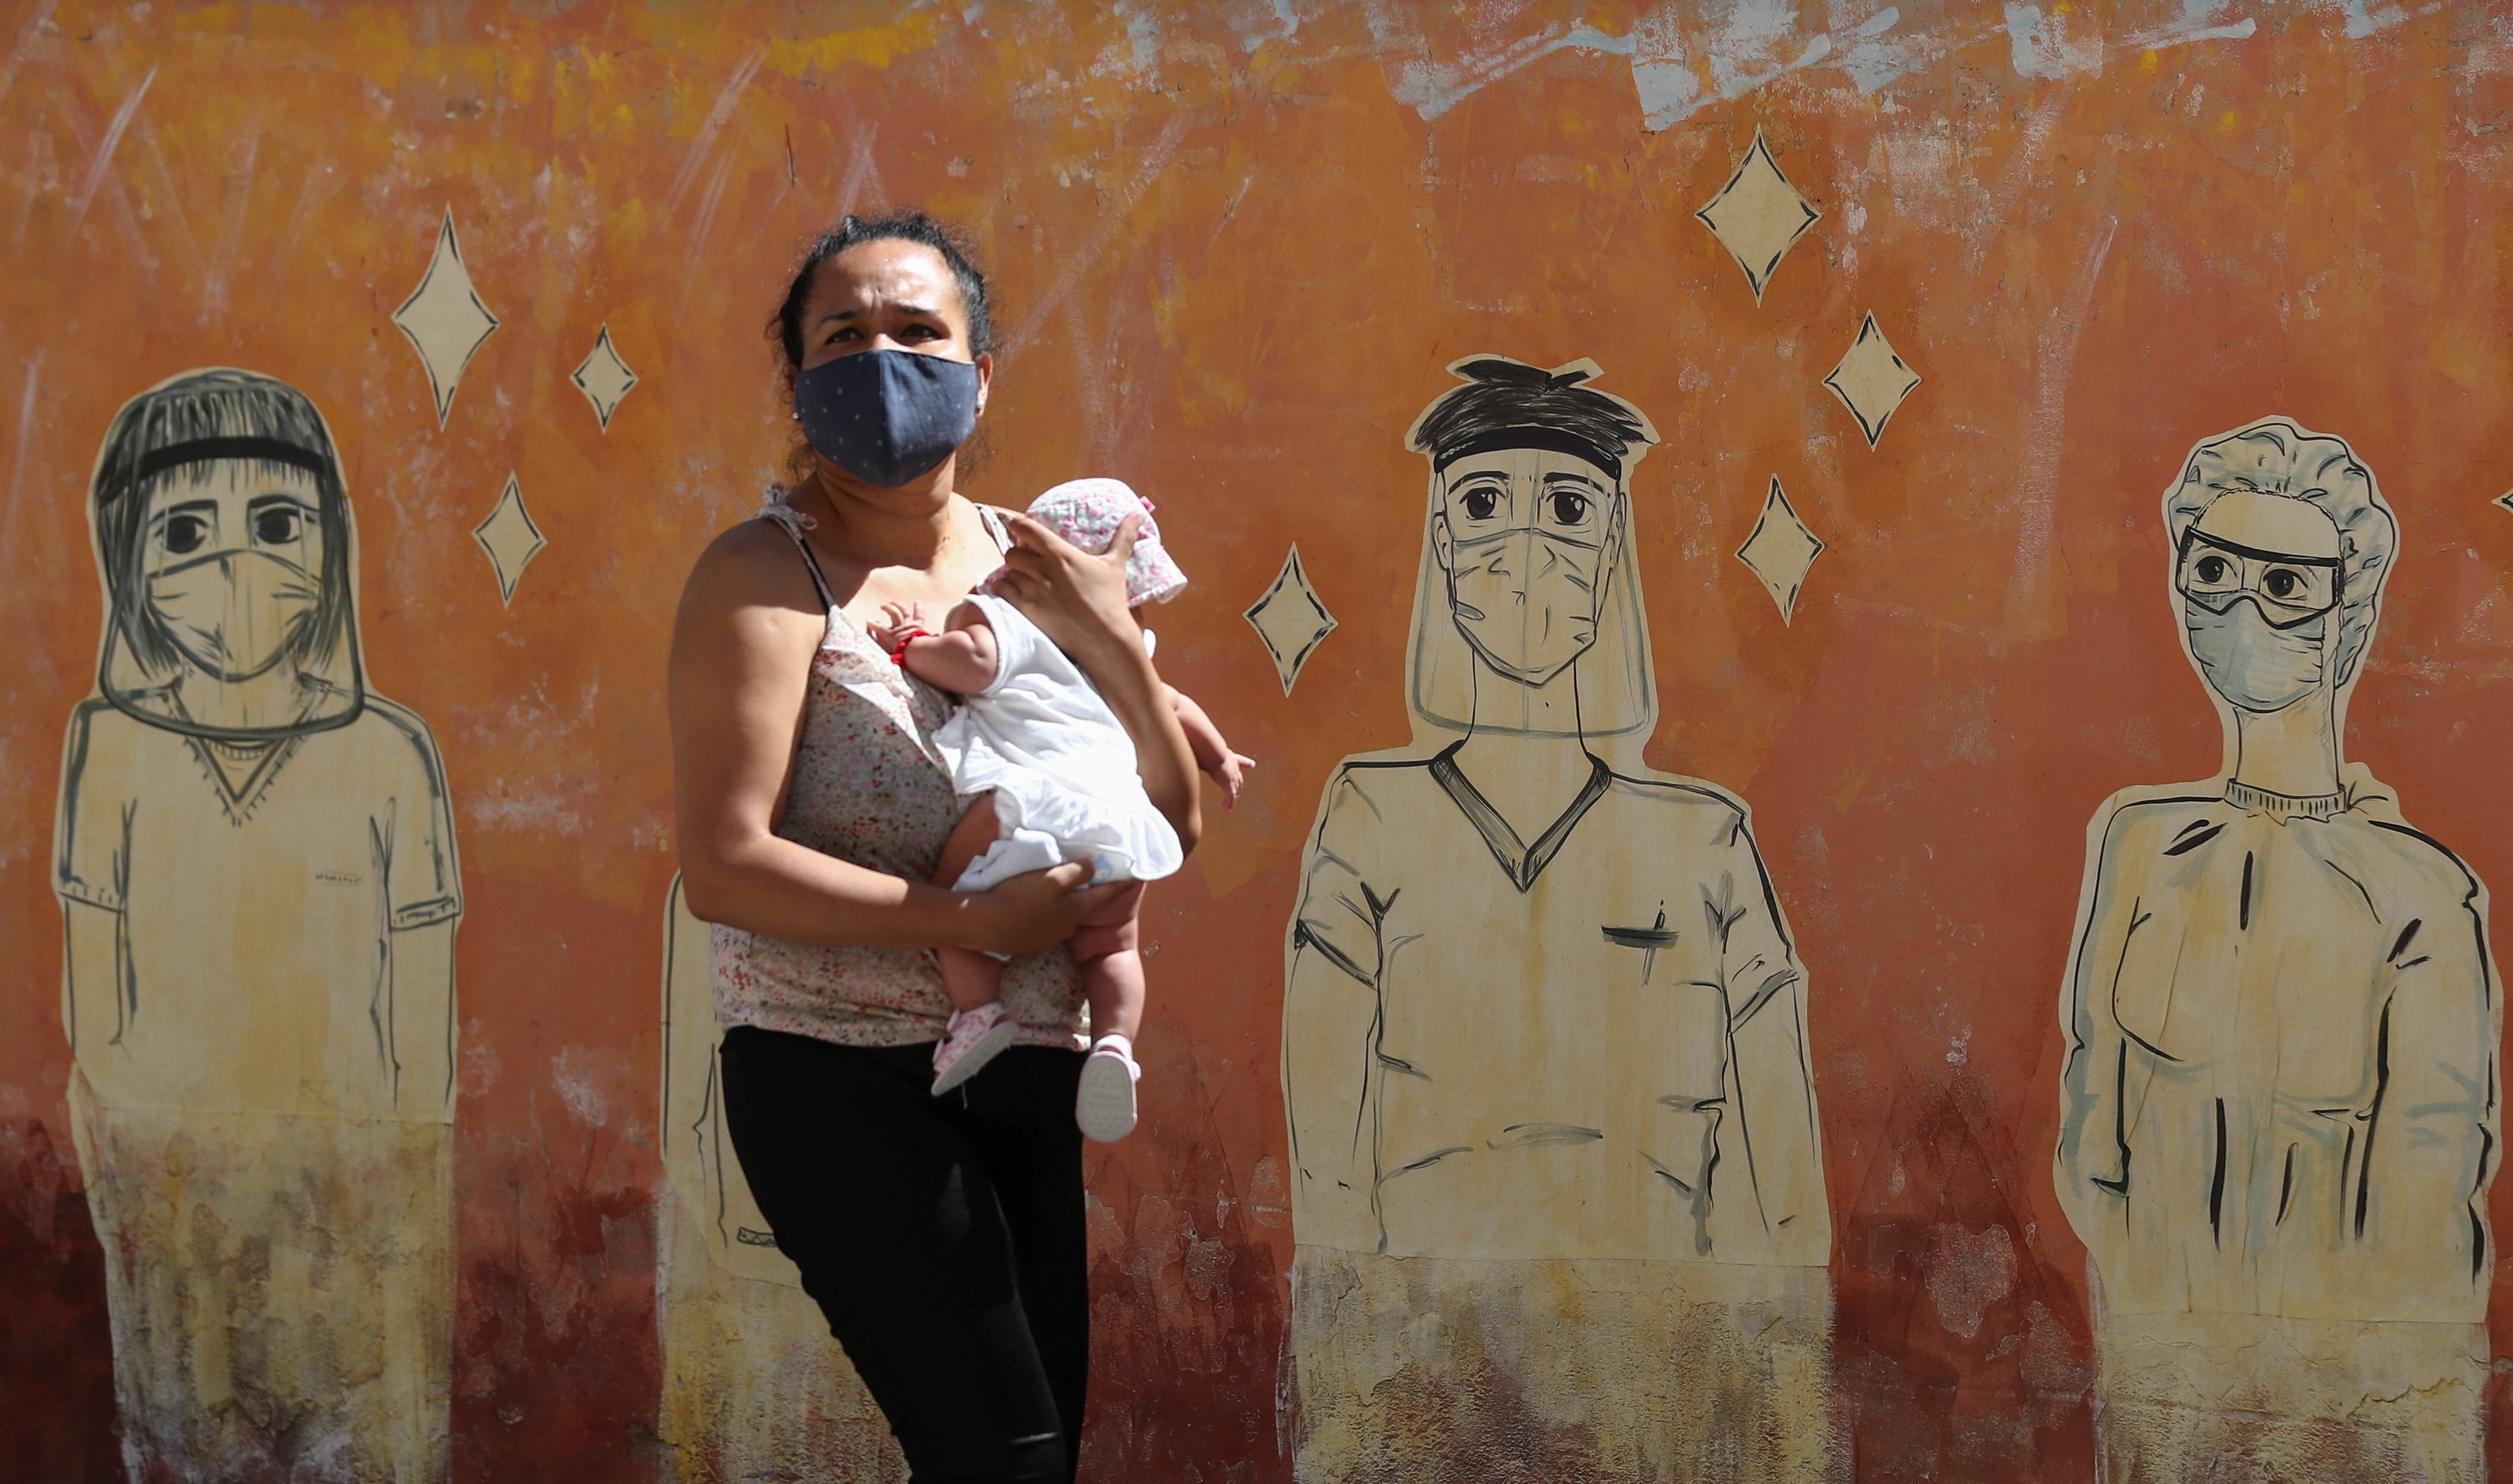 A woman wearing a face mask to prevent the spread of the coronavirus disease (COVID-19) walks past a graffiti in homage to the medical staff, at the San Martin hospital, in La Plata, on the outskirts of Buenos Aires, Argentina January 21, 2021.